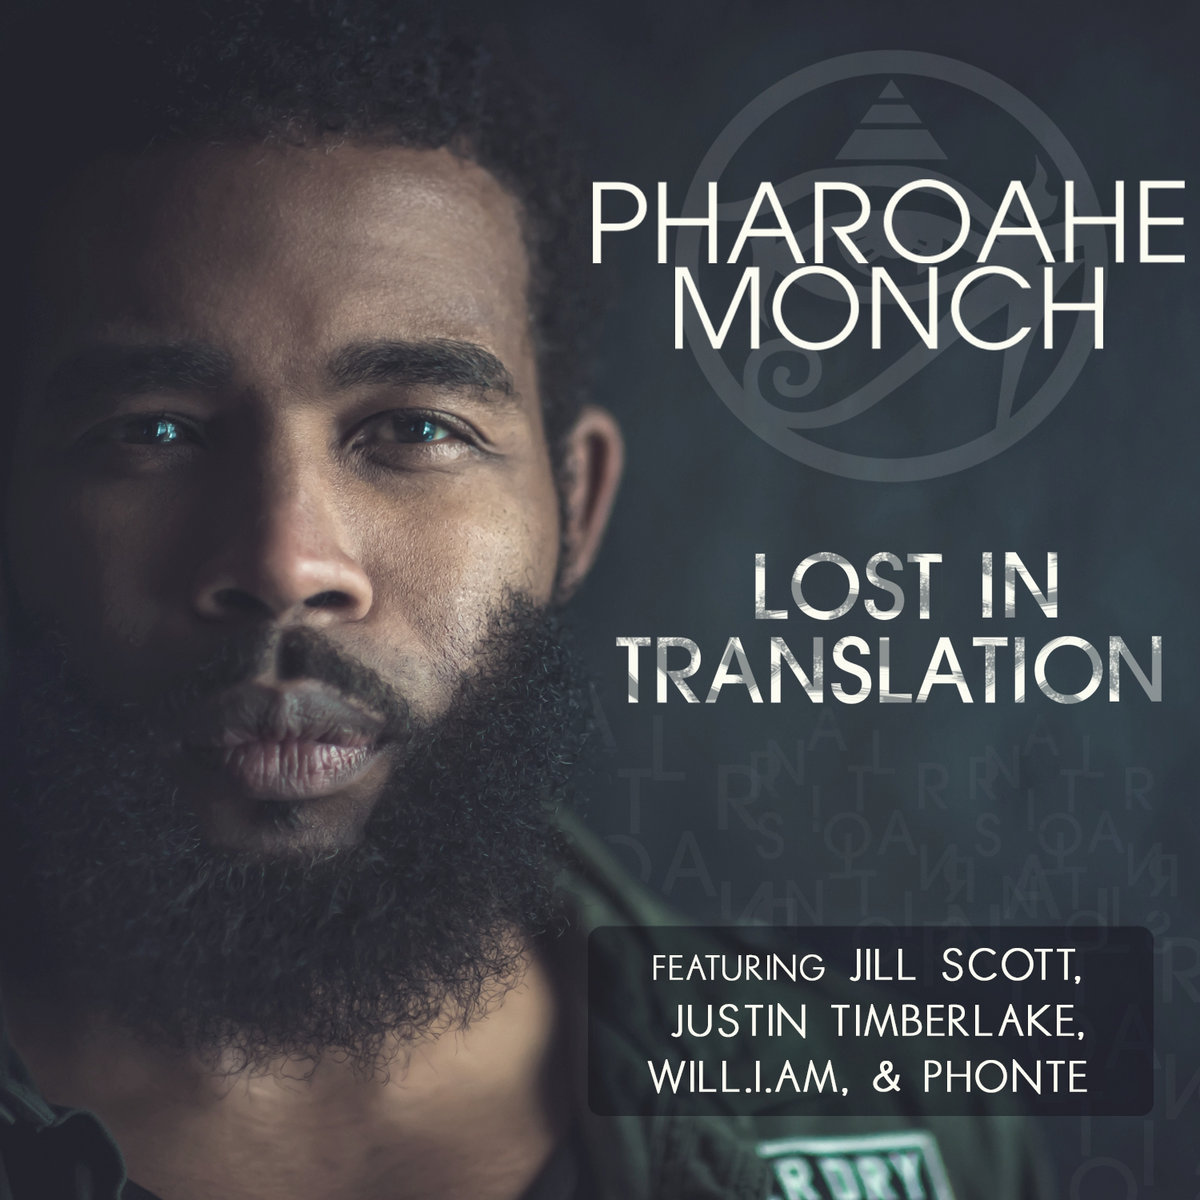 Resultado de imagen para Pharoahe Monch - Lost In Translation